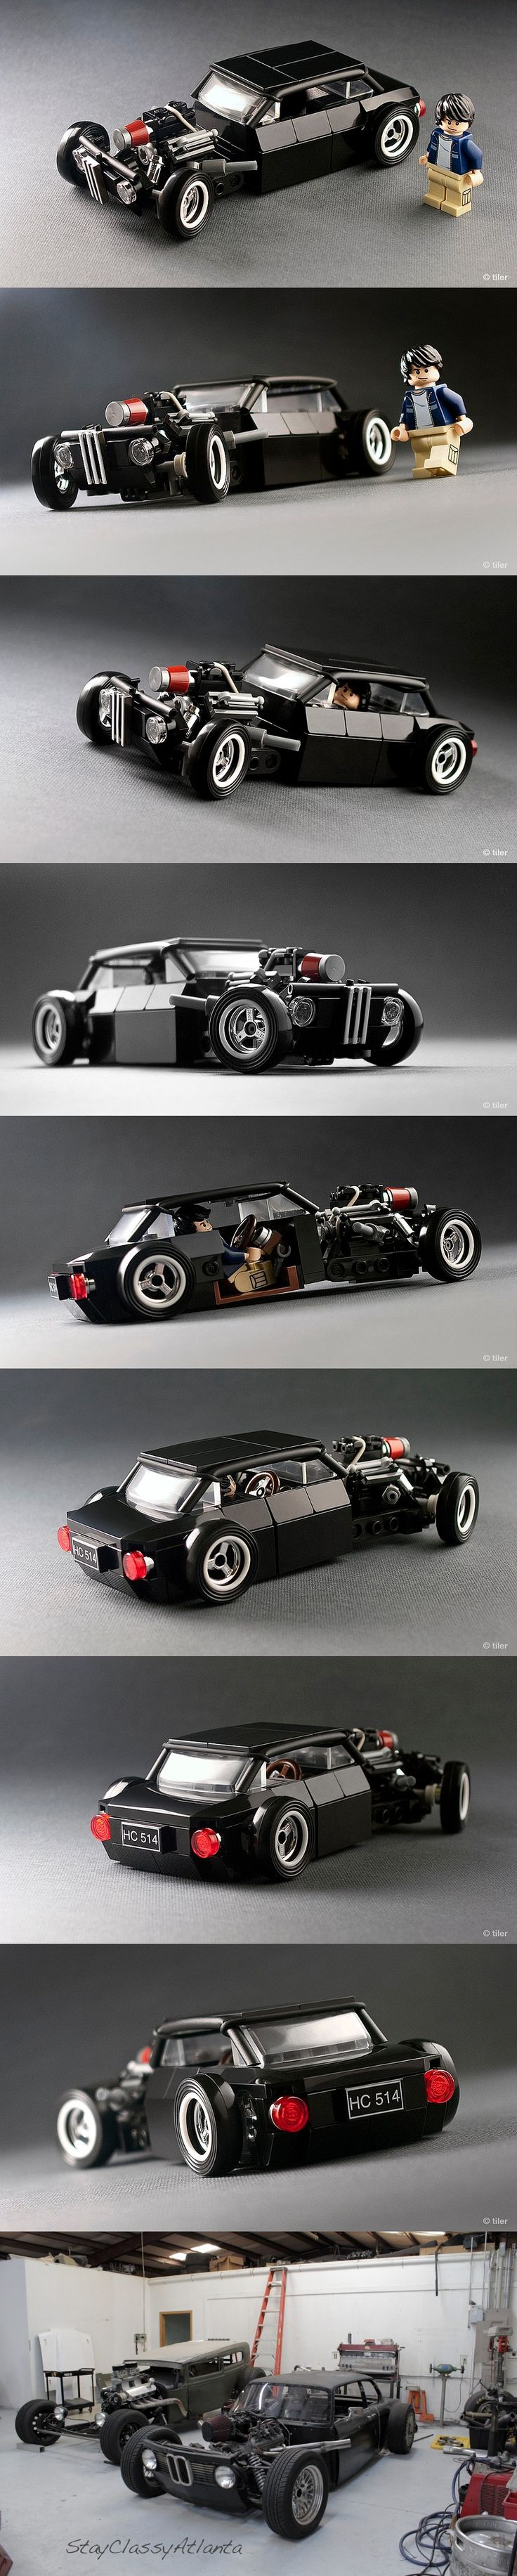 Gnarly BMW 2002 Rat Rod #BMW - a simply amazing little build